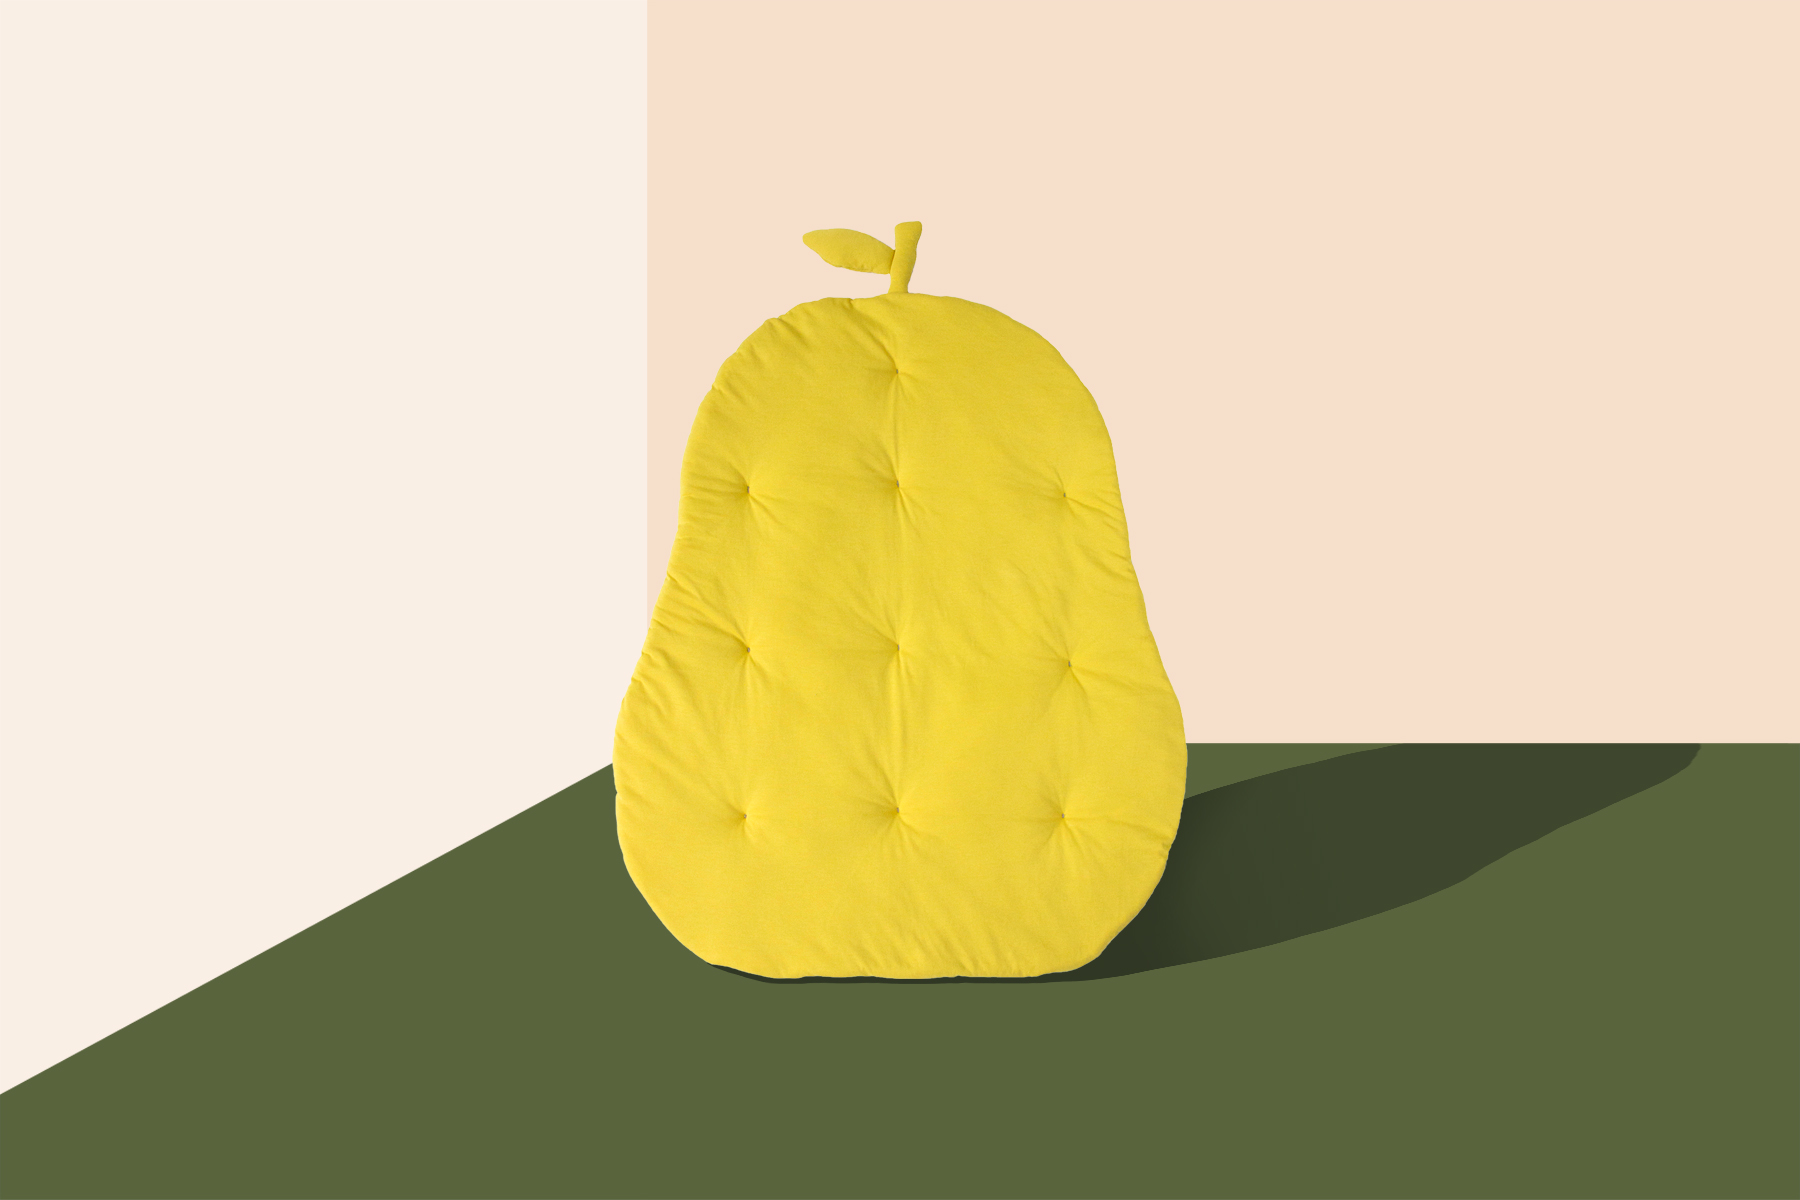 A green pear shaped soft cushion is on a background with a multicolored geometric pattern.